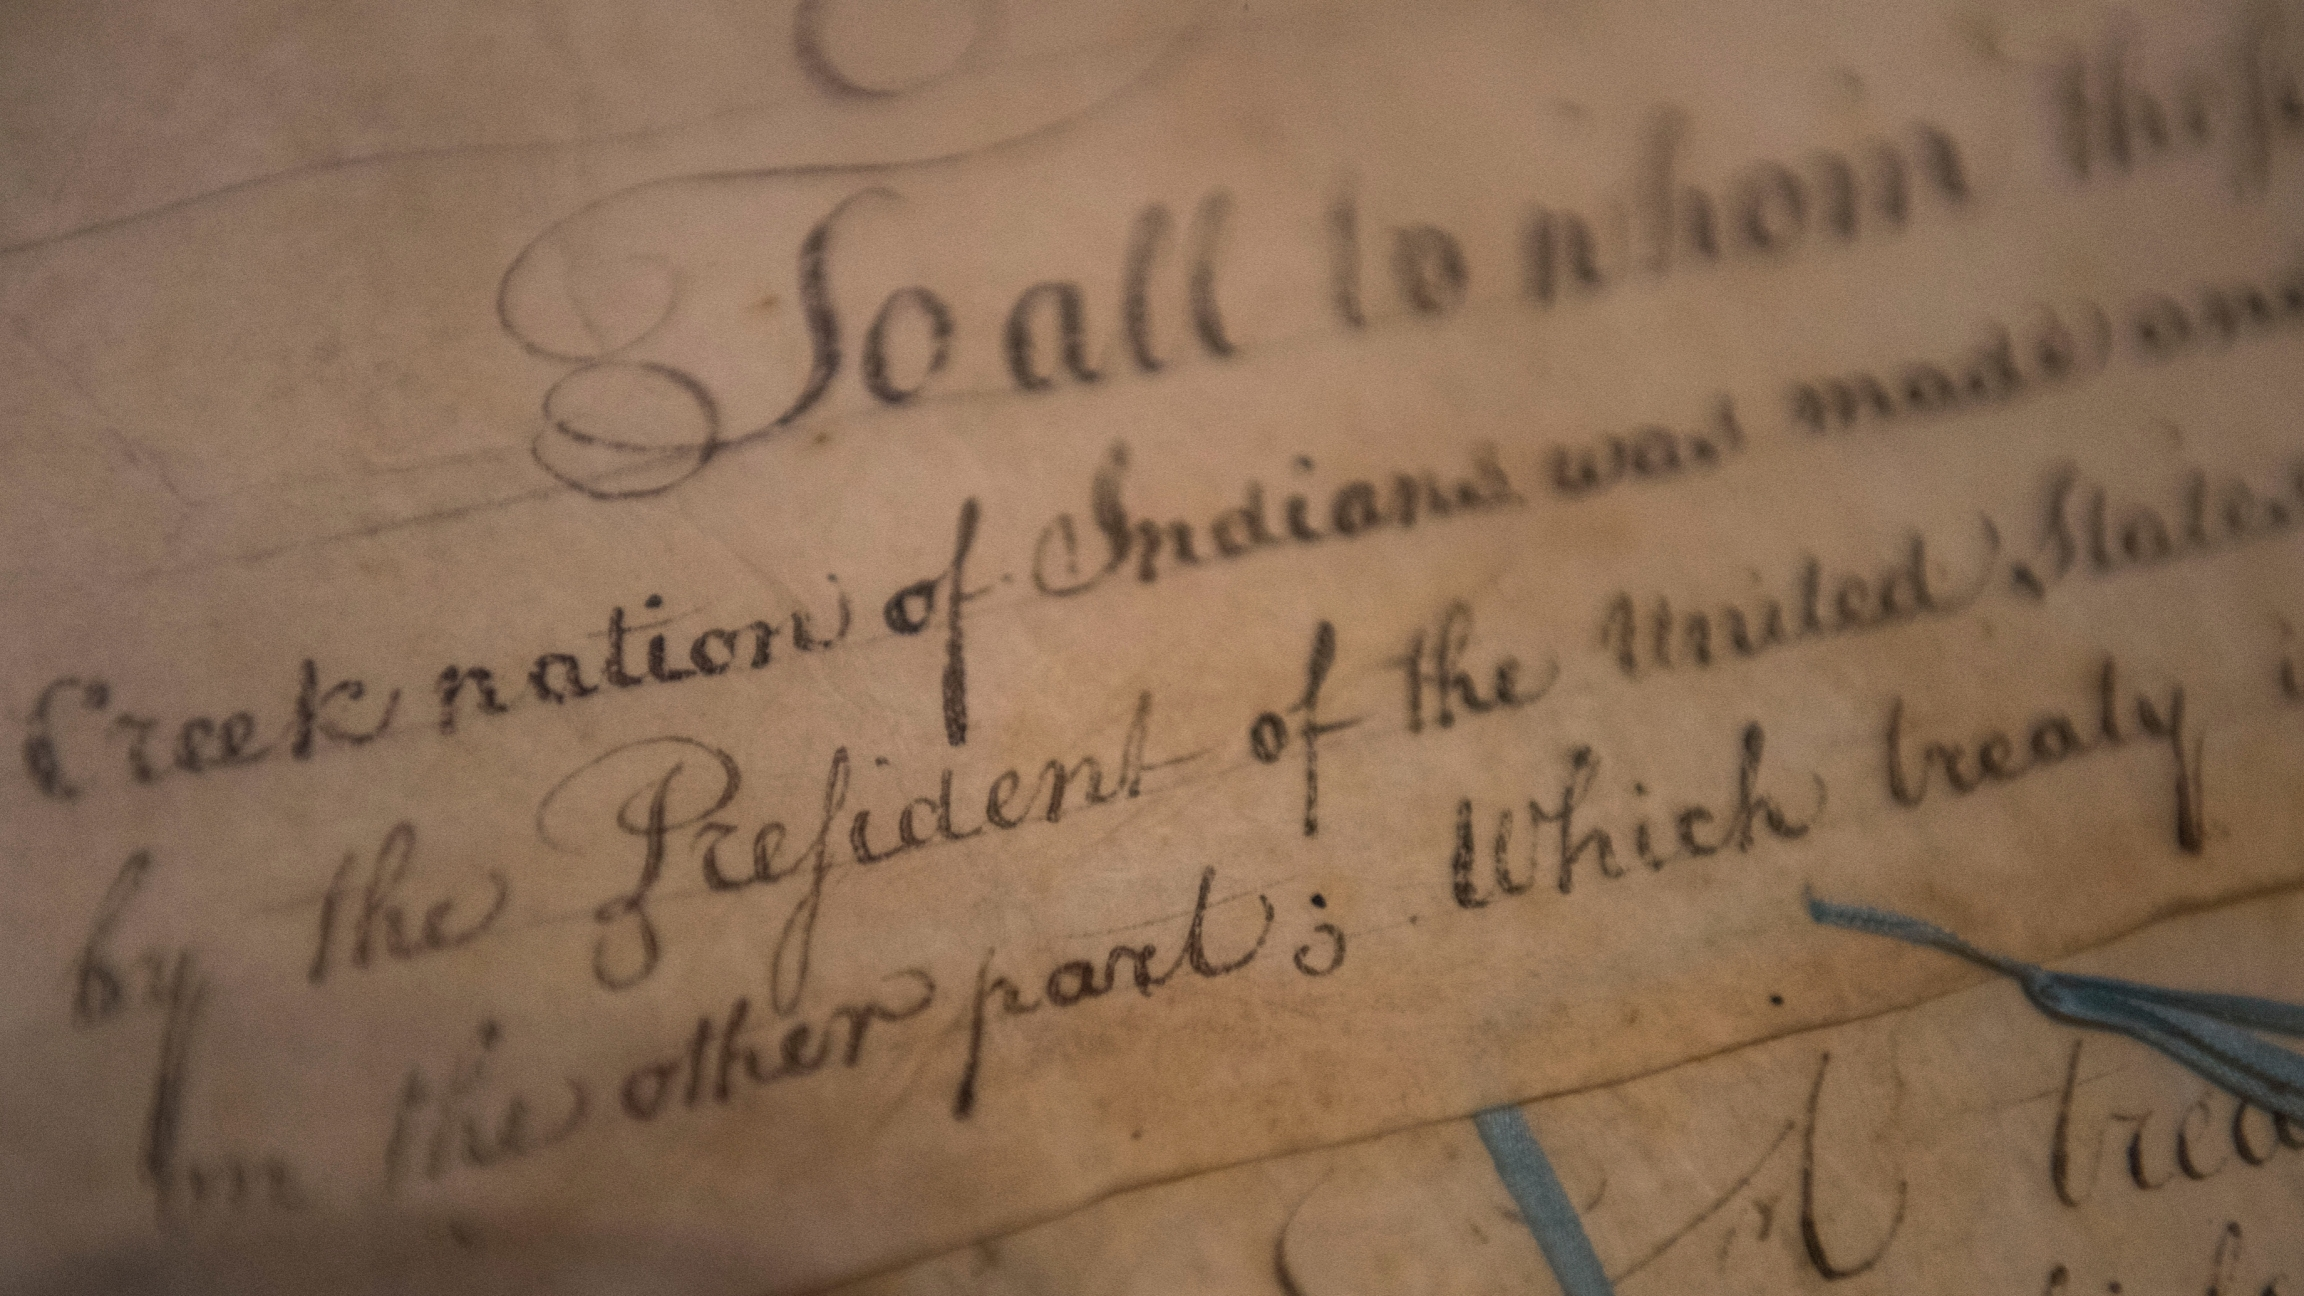 A 1790 Treaty of Muscogee (Creek) Nations and the US, written with elegant cursive script